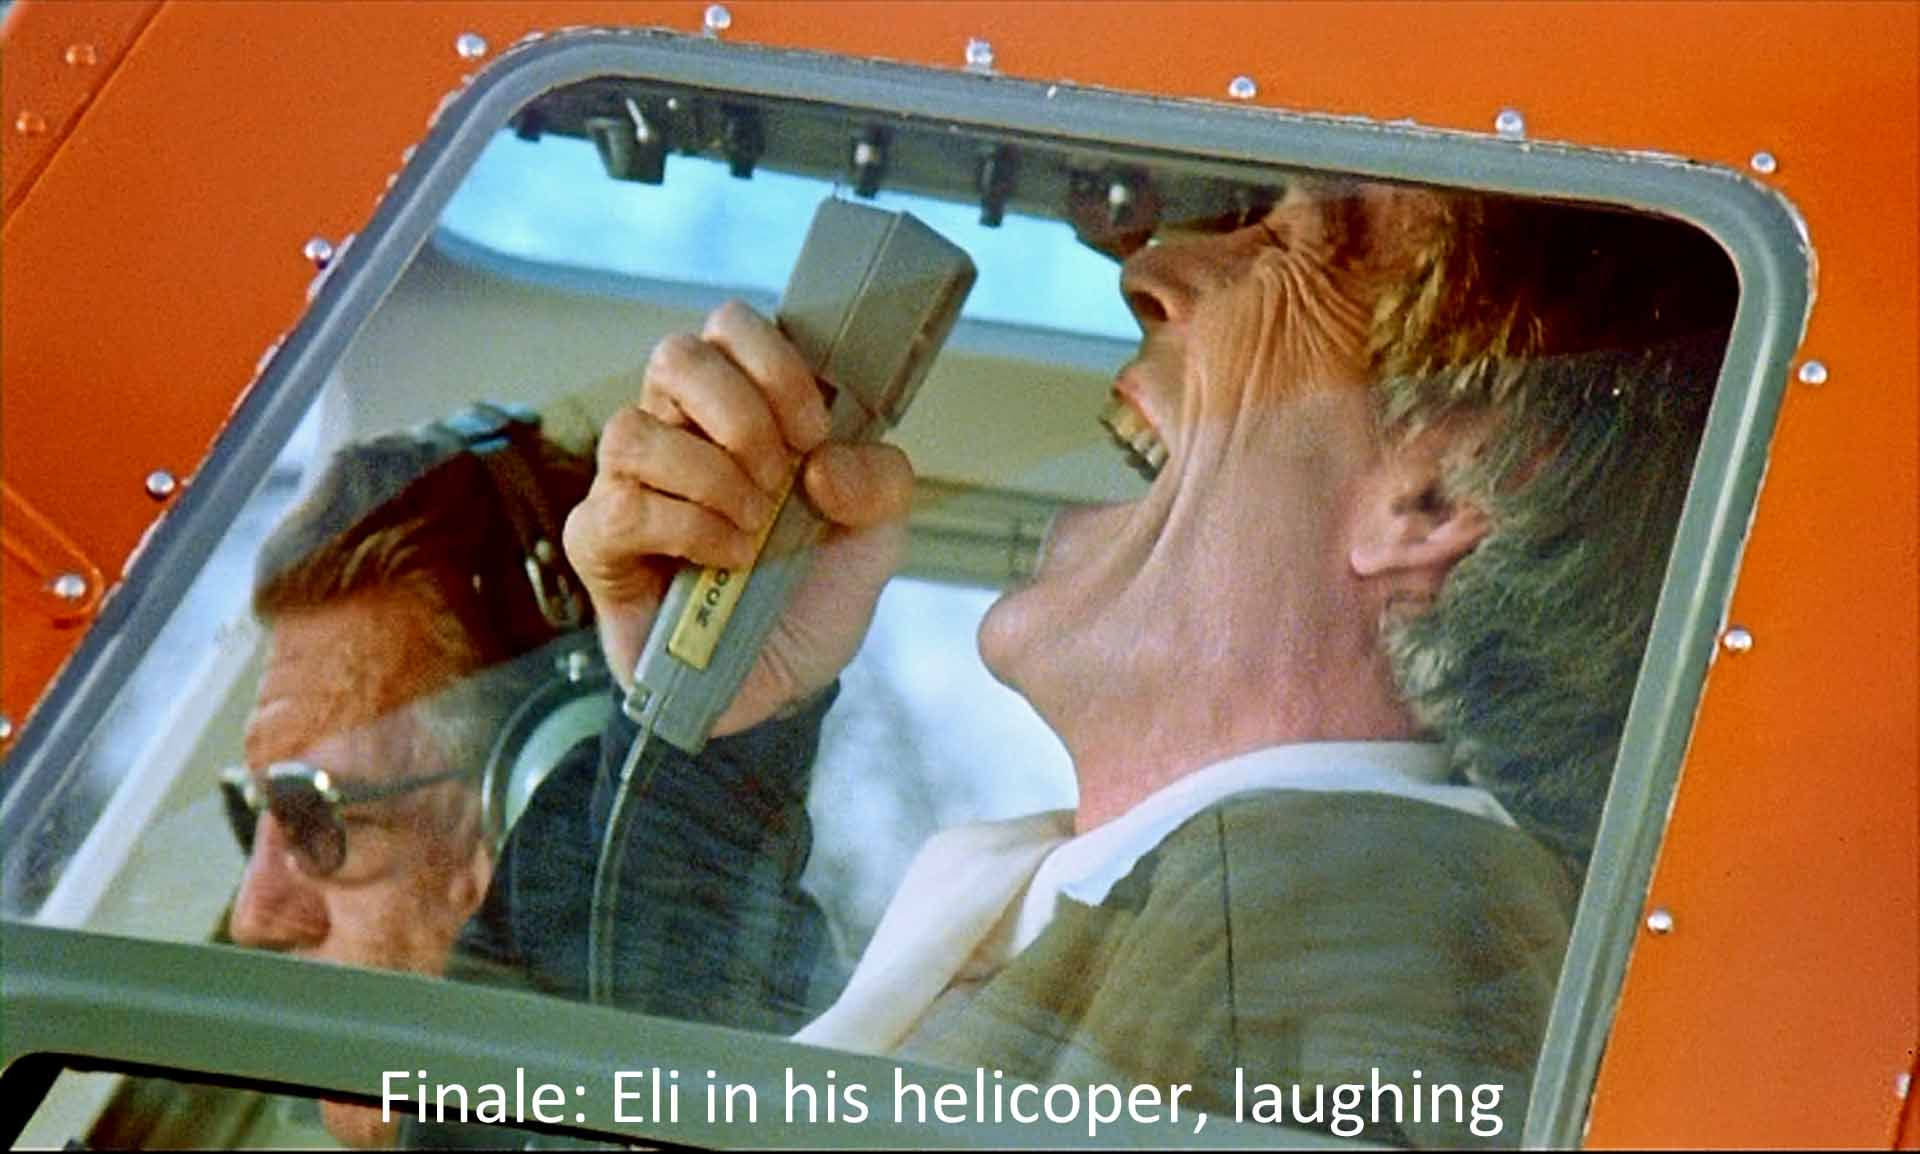 Finale: Eli in his helicopter, laughing